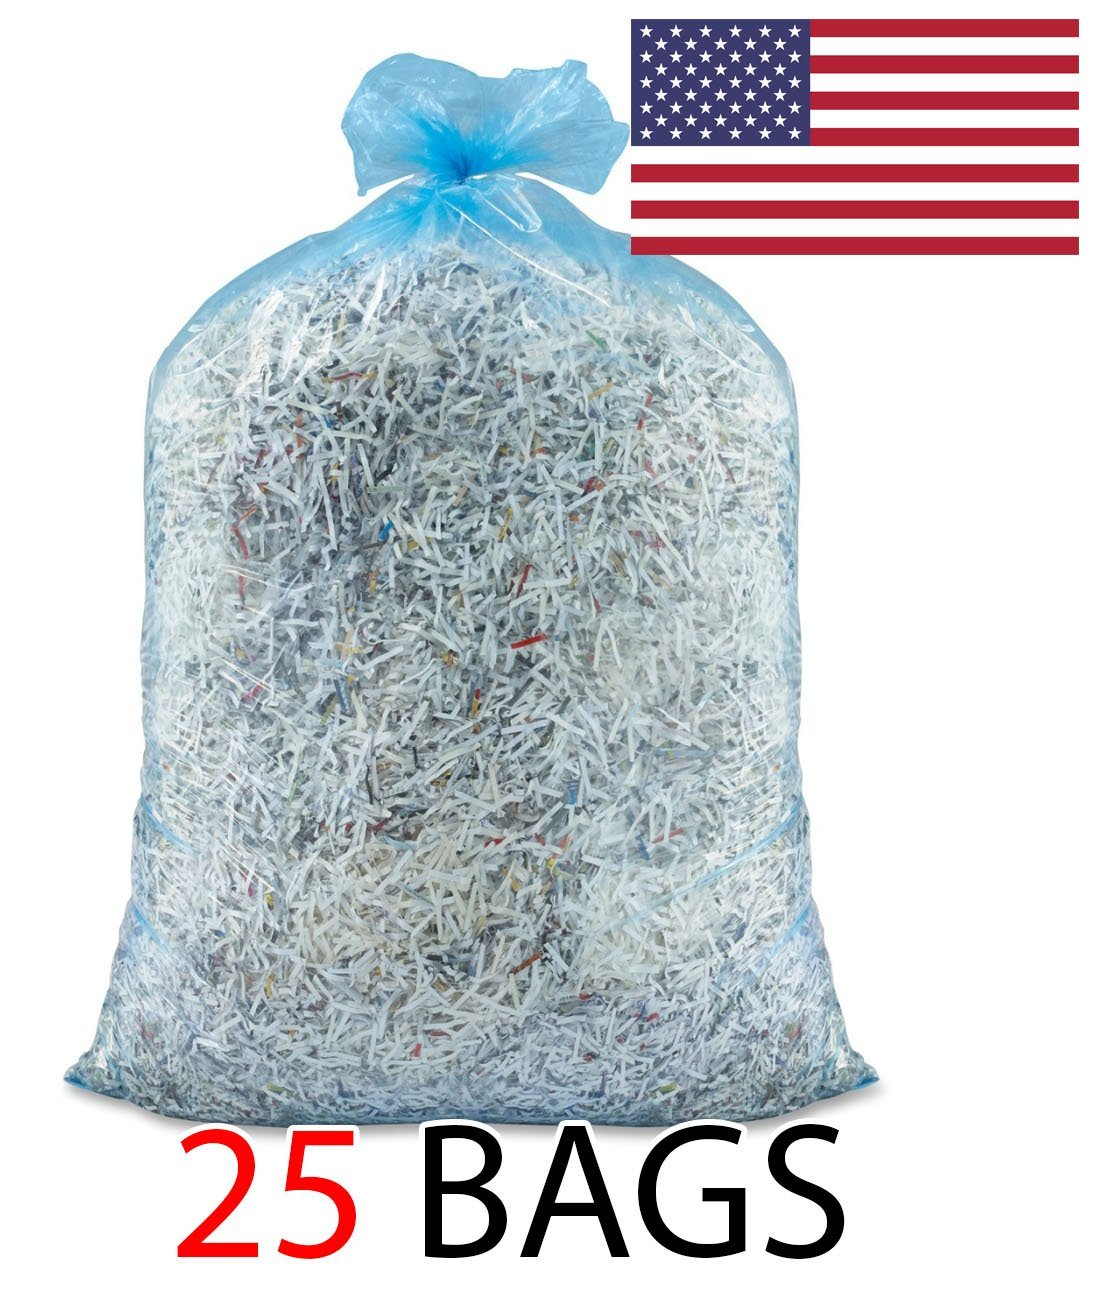 Cheap Recycling Bags, find Recycling Bags deals on line at Alibaba.com